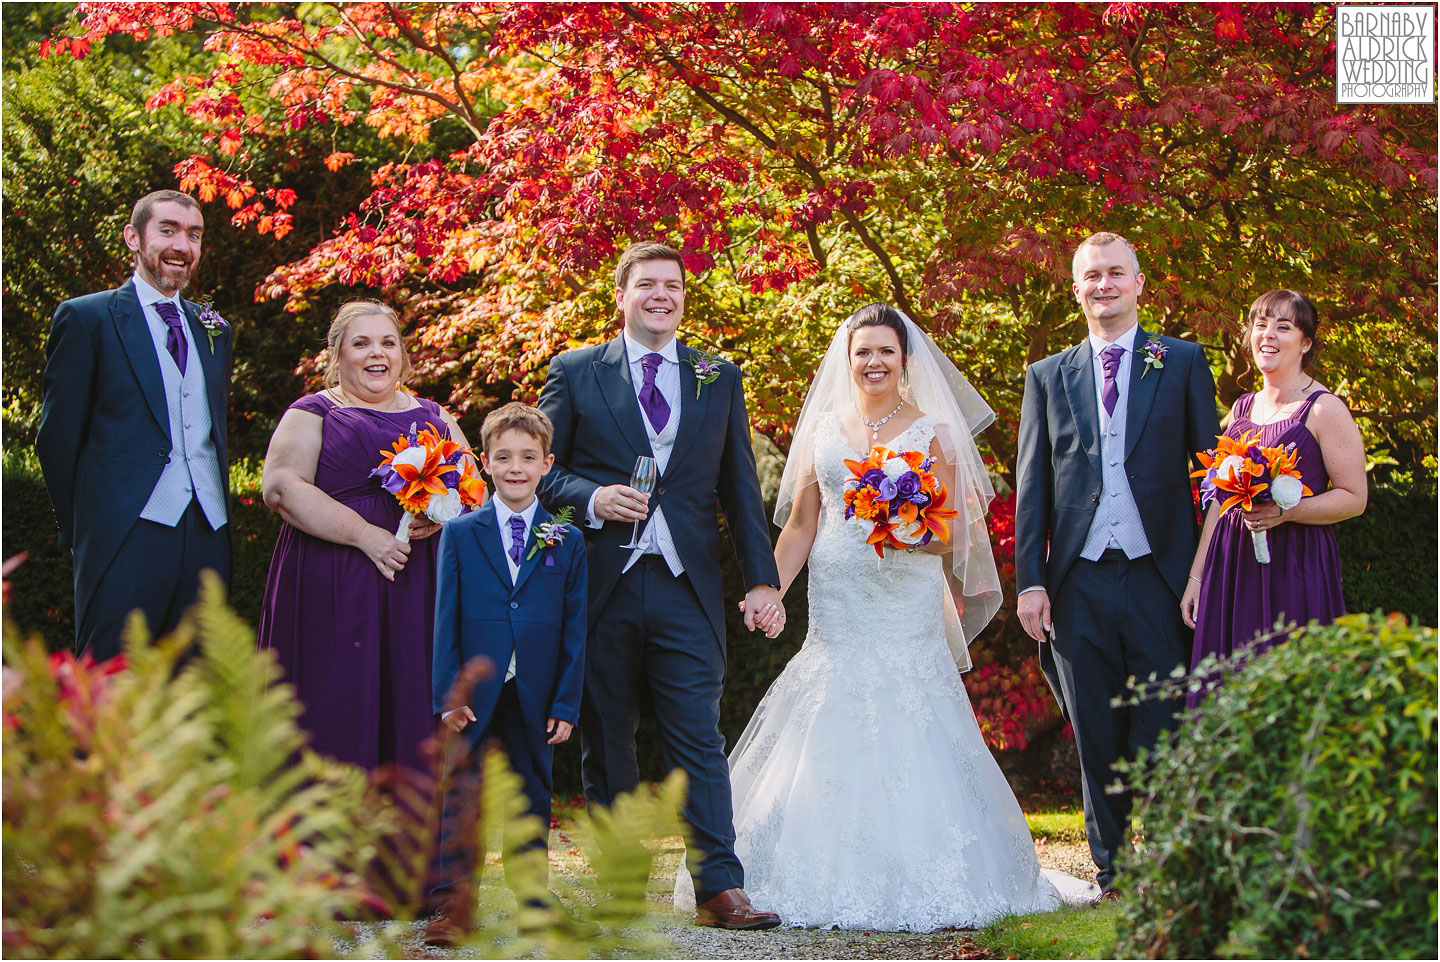 Autumnal Wedding party photos at Thornbridge Hall Derbyshire Wedding Photos, Thornbridge Hall Wedding Photography, Autumnal Derbyshire Wedding, Derbyshire Wedding Photographer